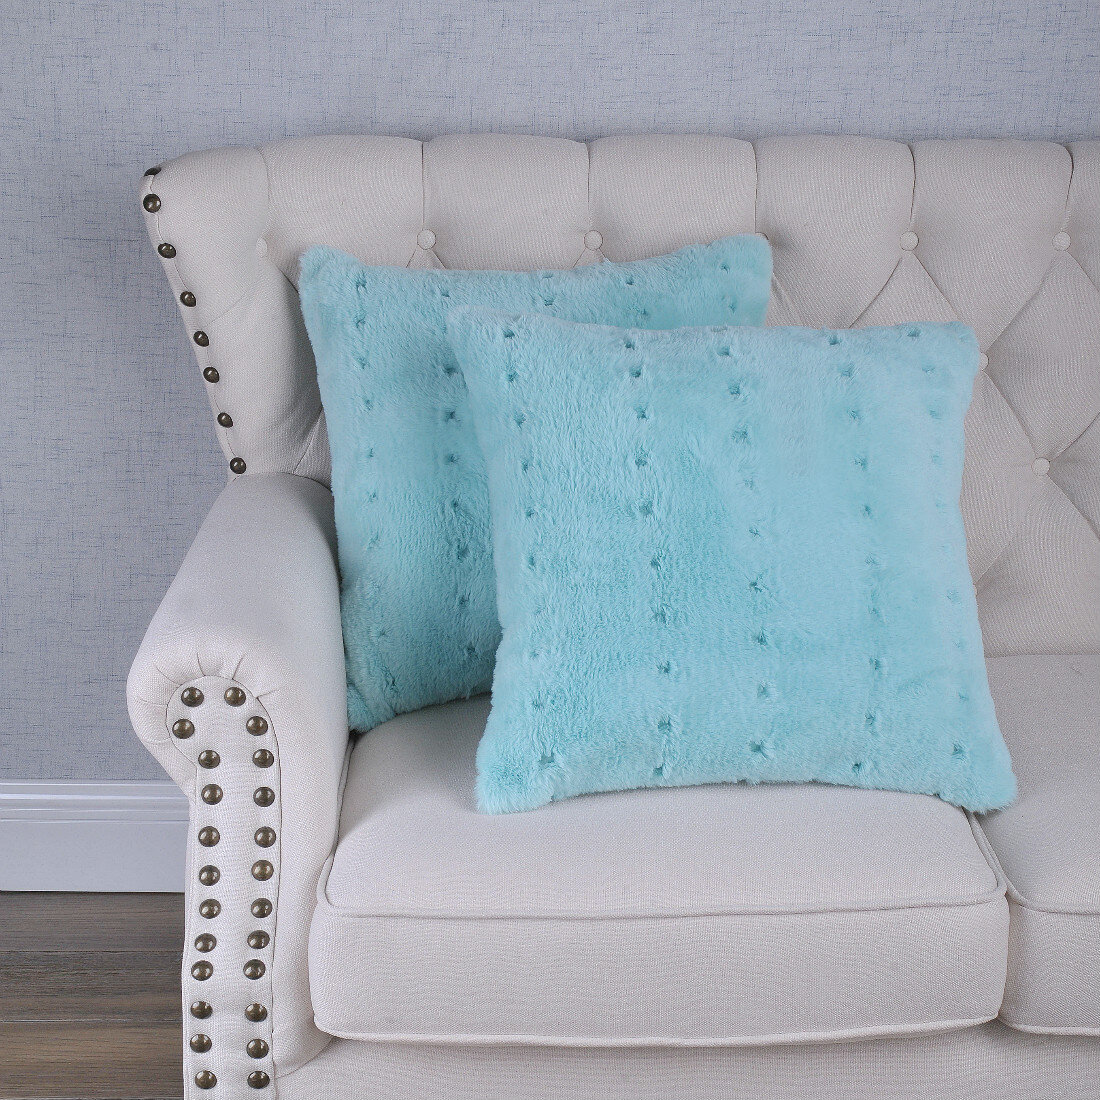 House Of Hampton Throw Pillows You Ll Love In 2021 Wayfair